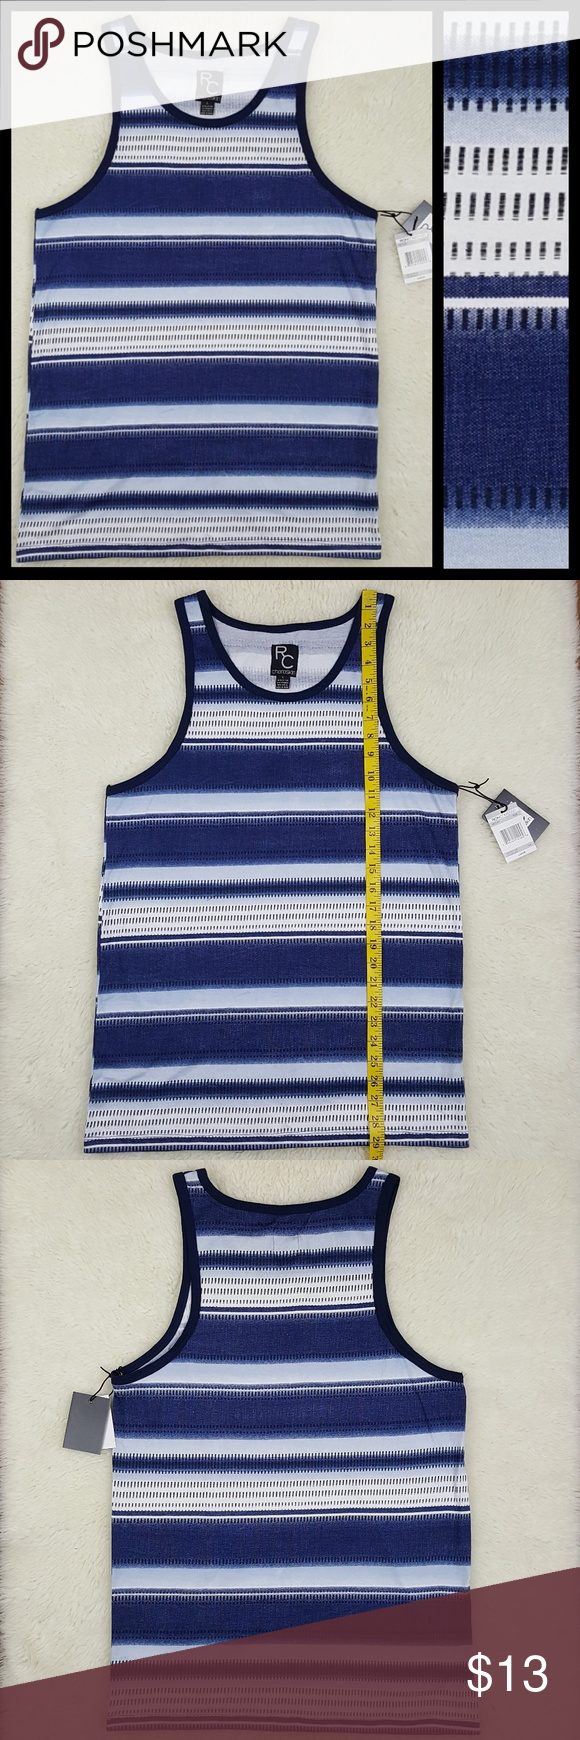 99cedfa5ce4f5 Ron Chereskin Abstract Stripe Mens Tank Top Sz L New with tags ...